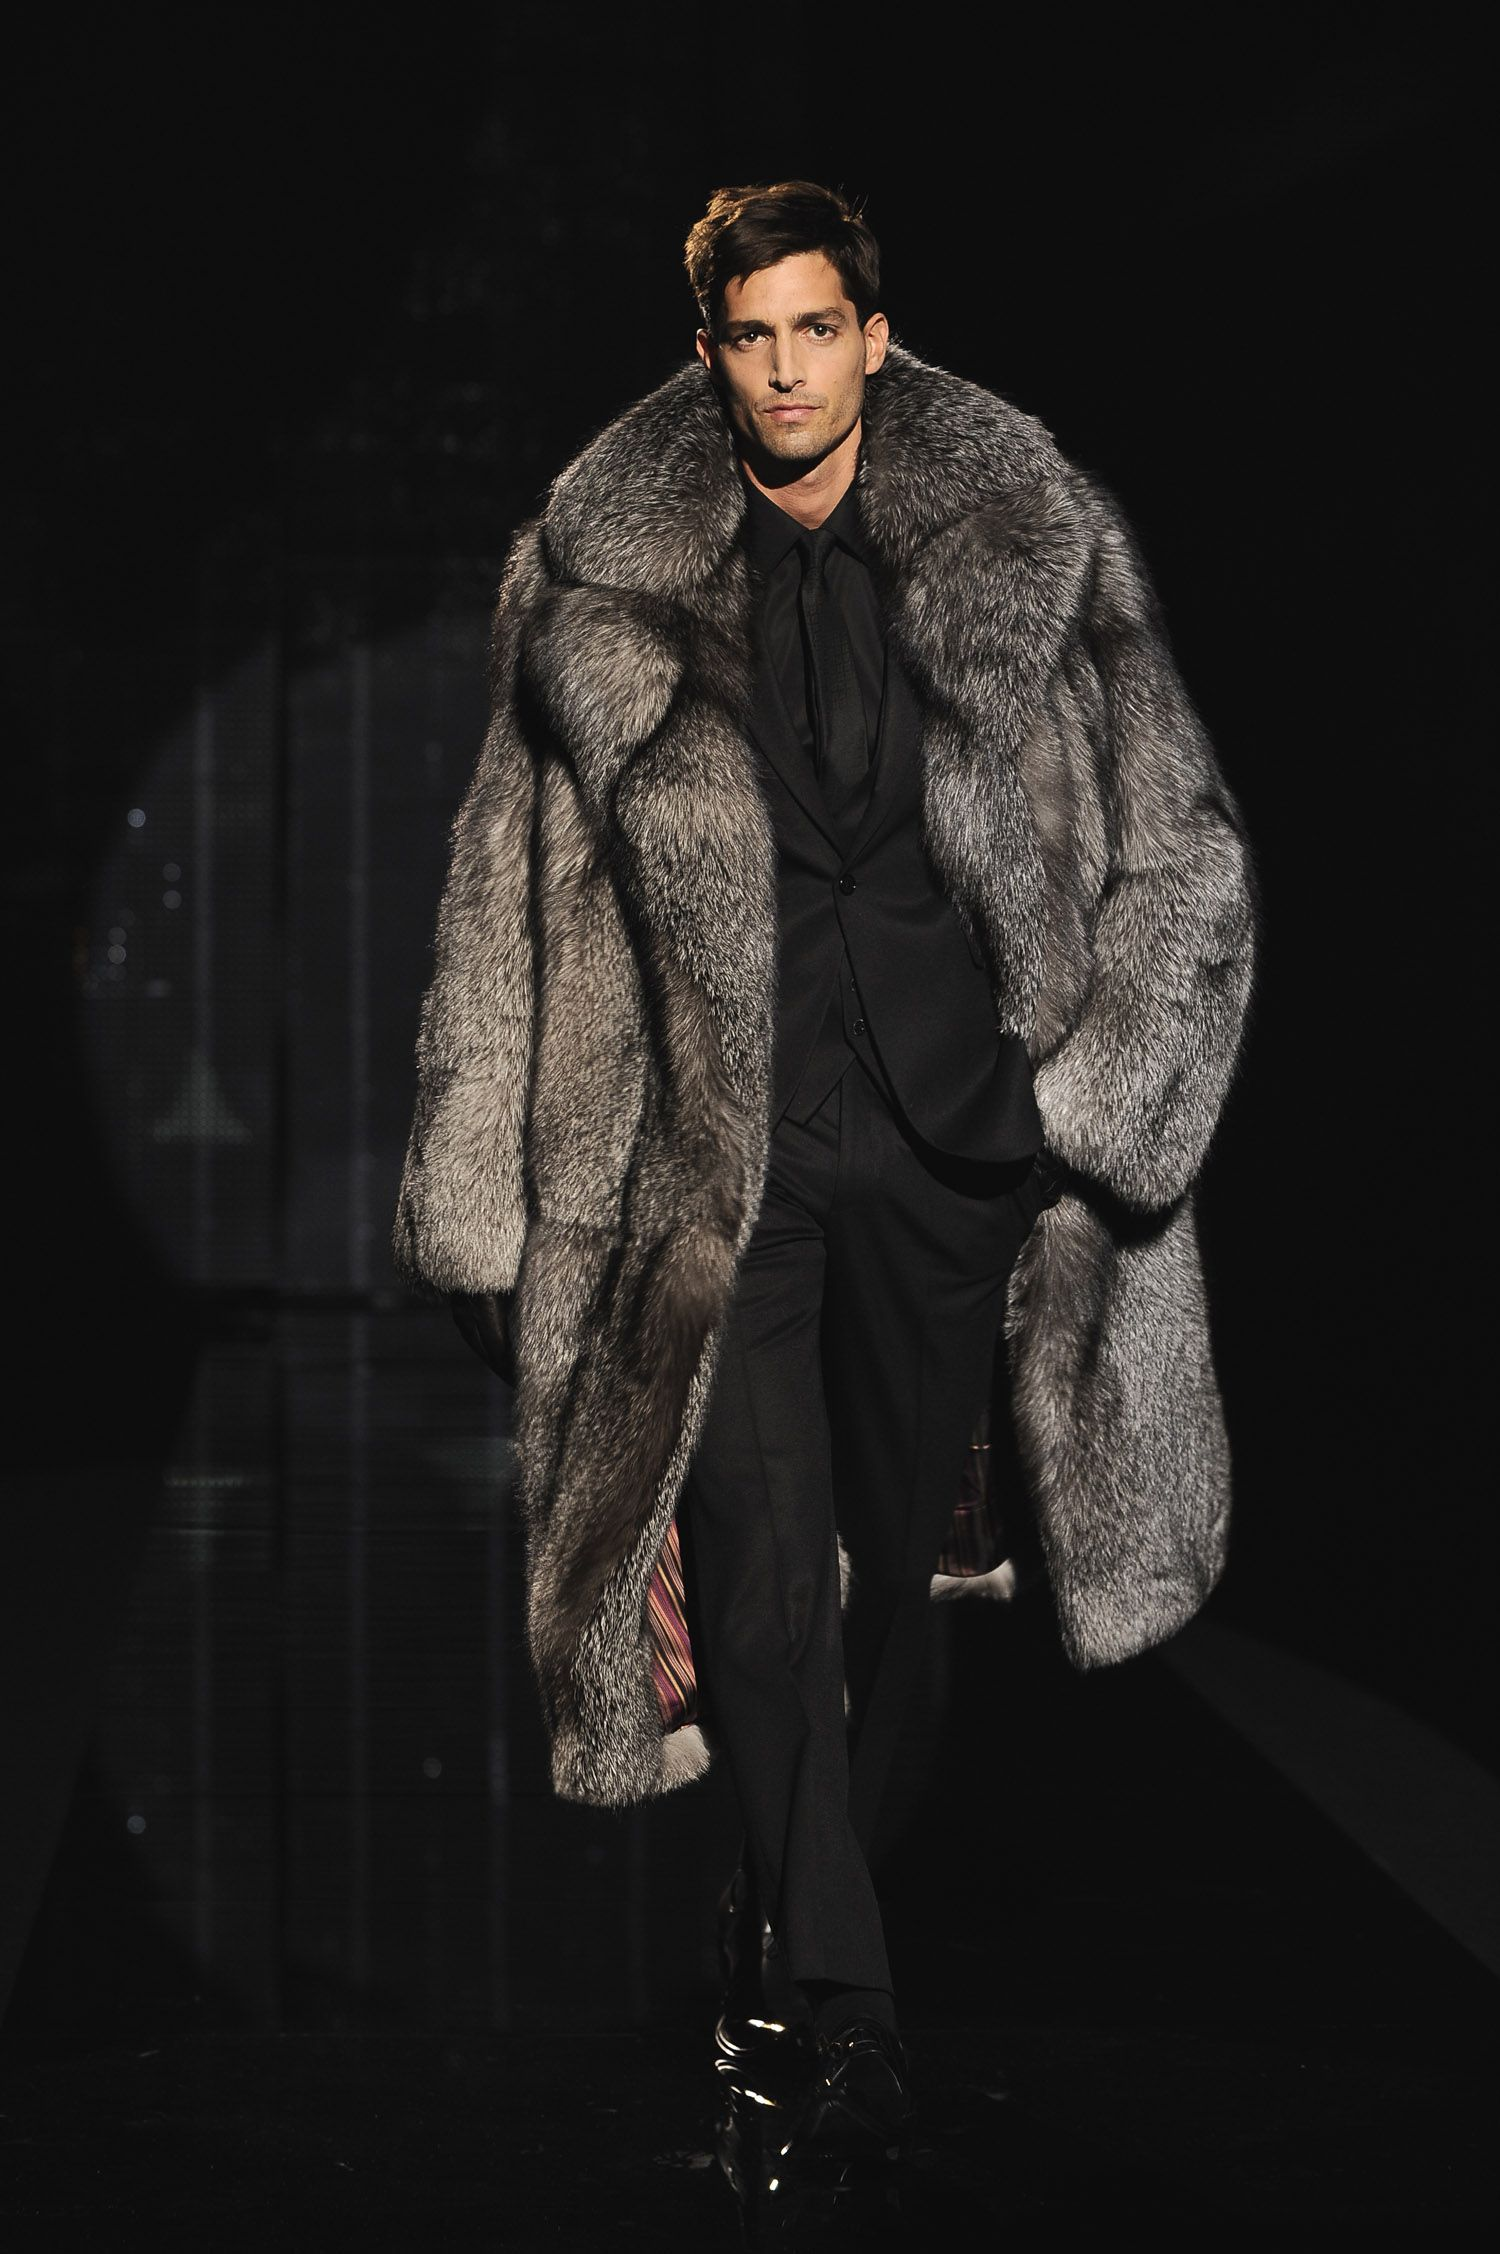 Fur Coats For Men Men s coat trends w 13-14    Fur (fourrure) b14ecdabac2